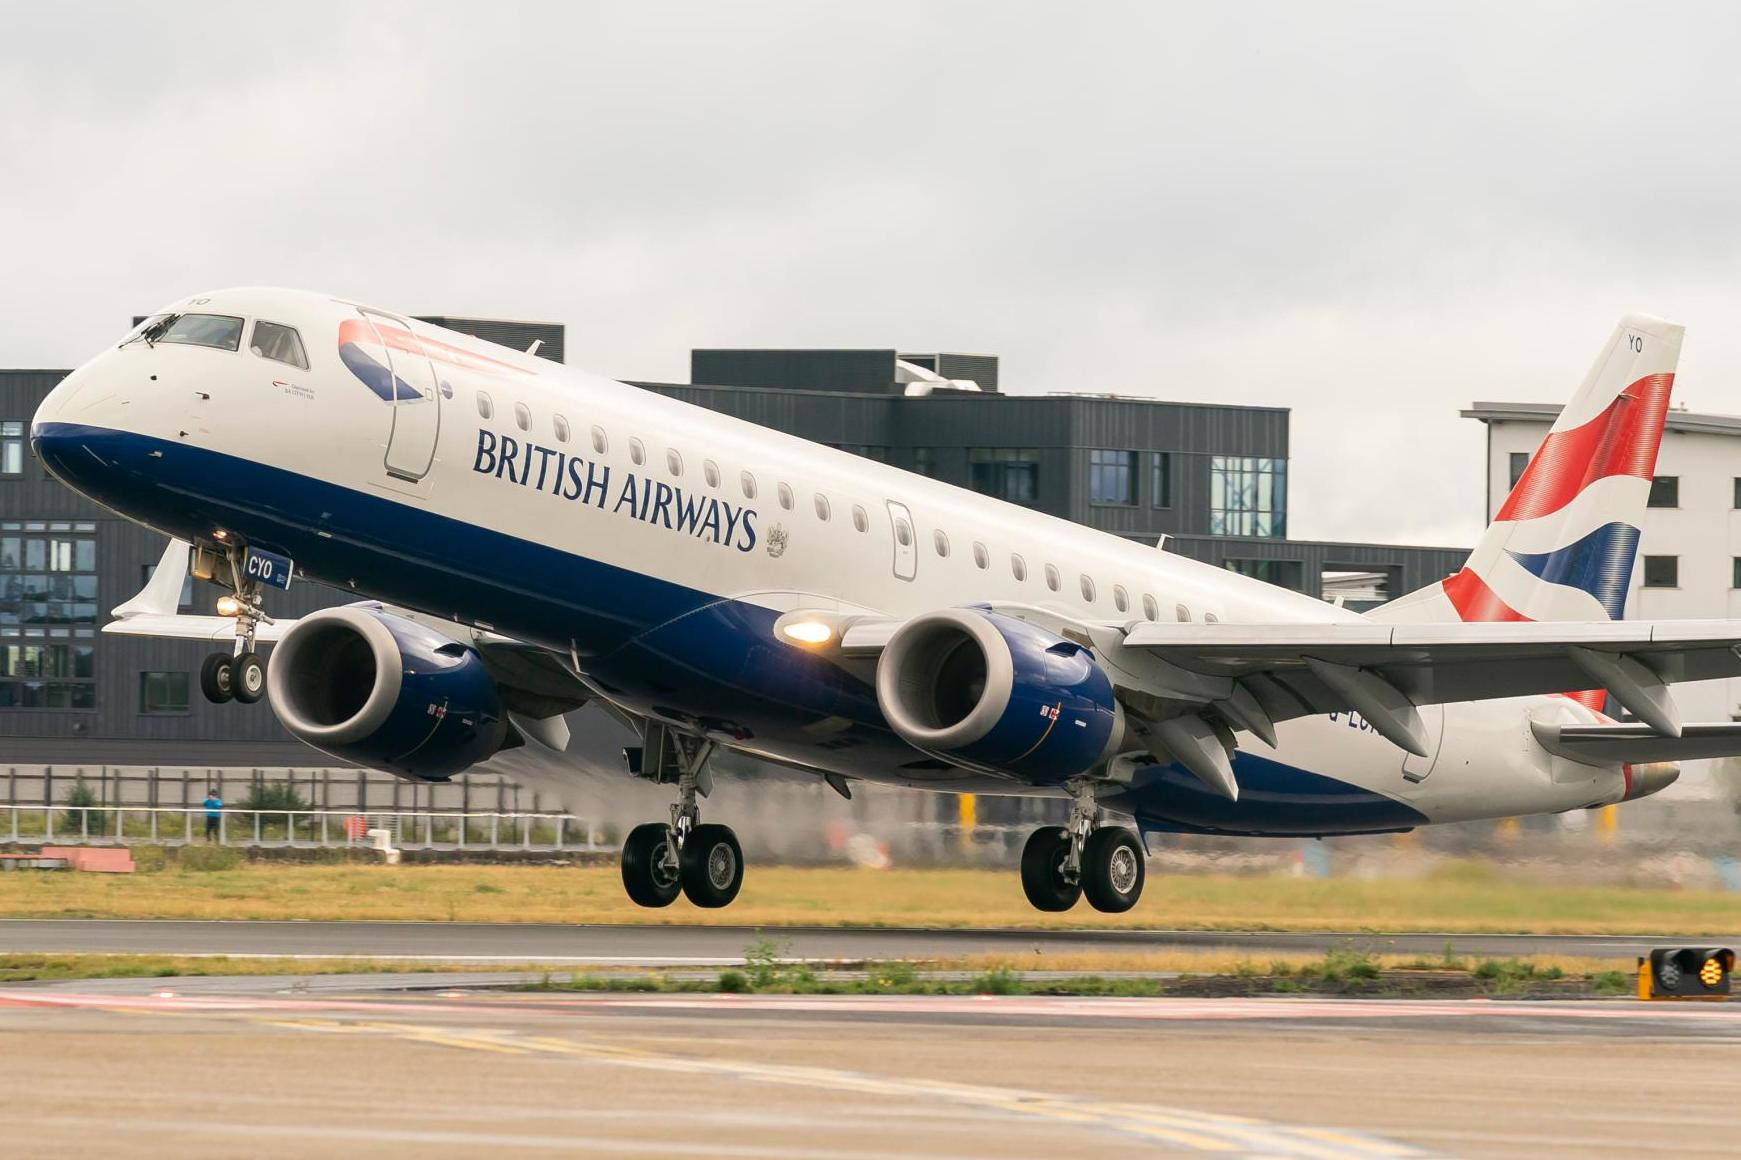 London City takes off as a 'summer-sun' airport